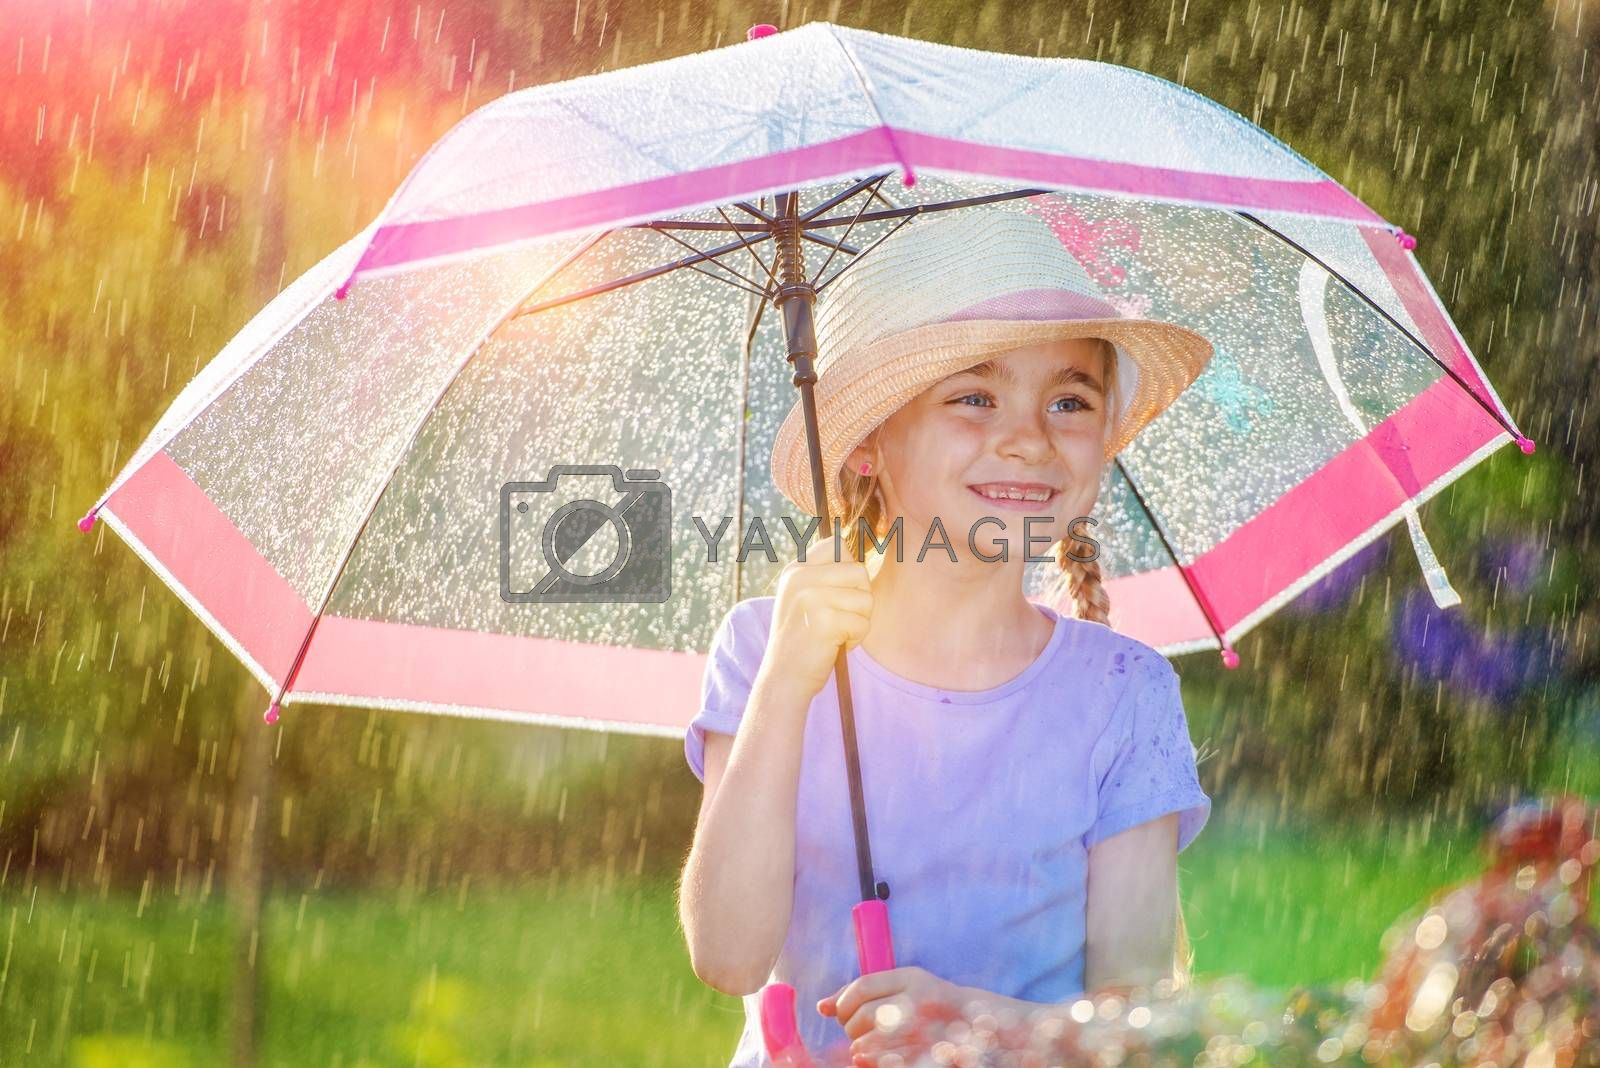 Rainy Weather Outdoor Fun. Young Caucasian Girl with Pink Umbrella.